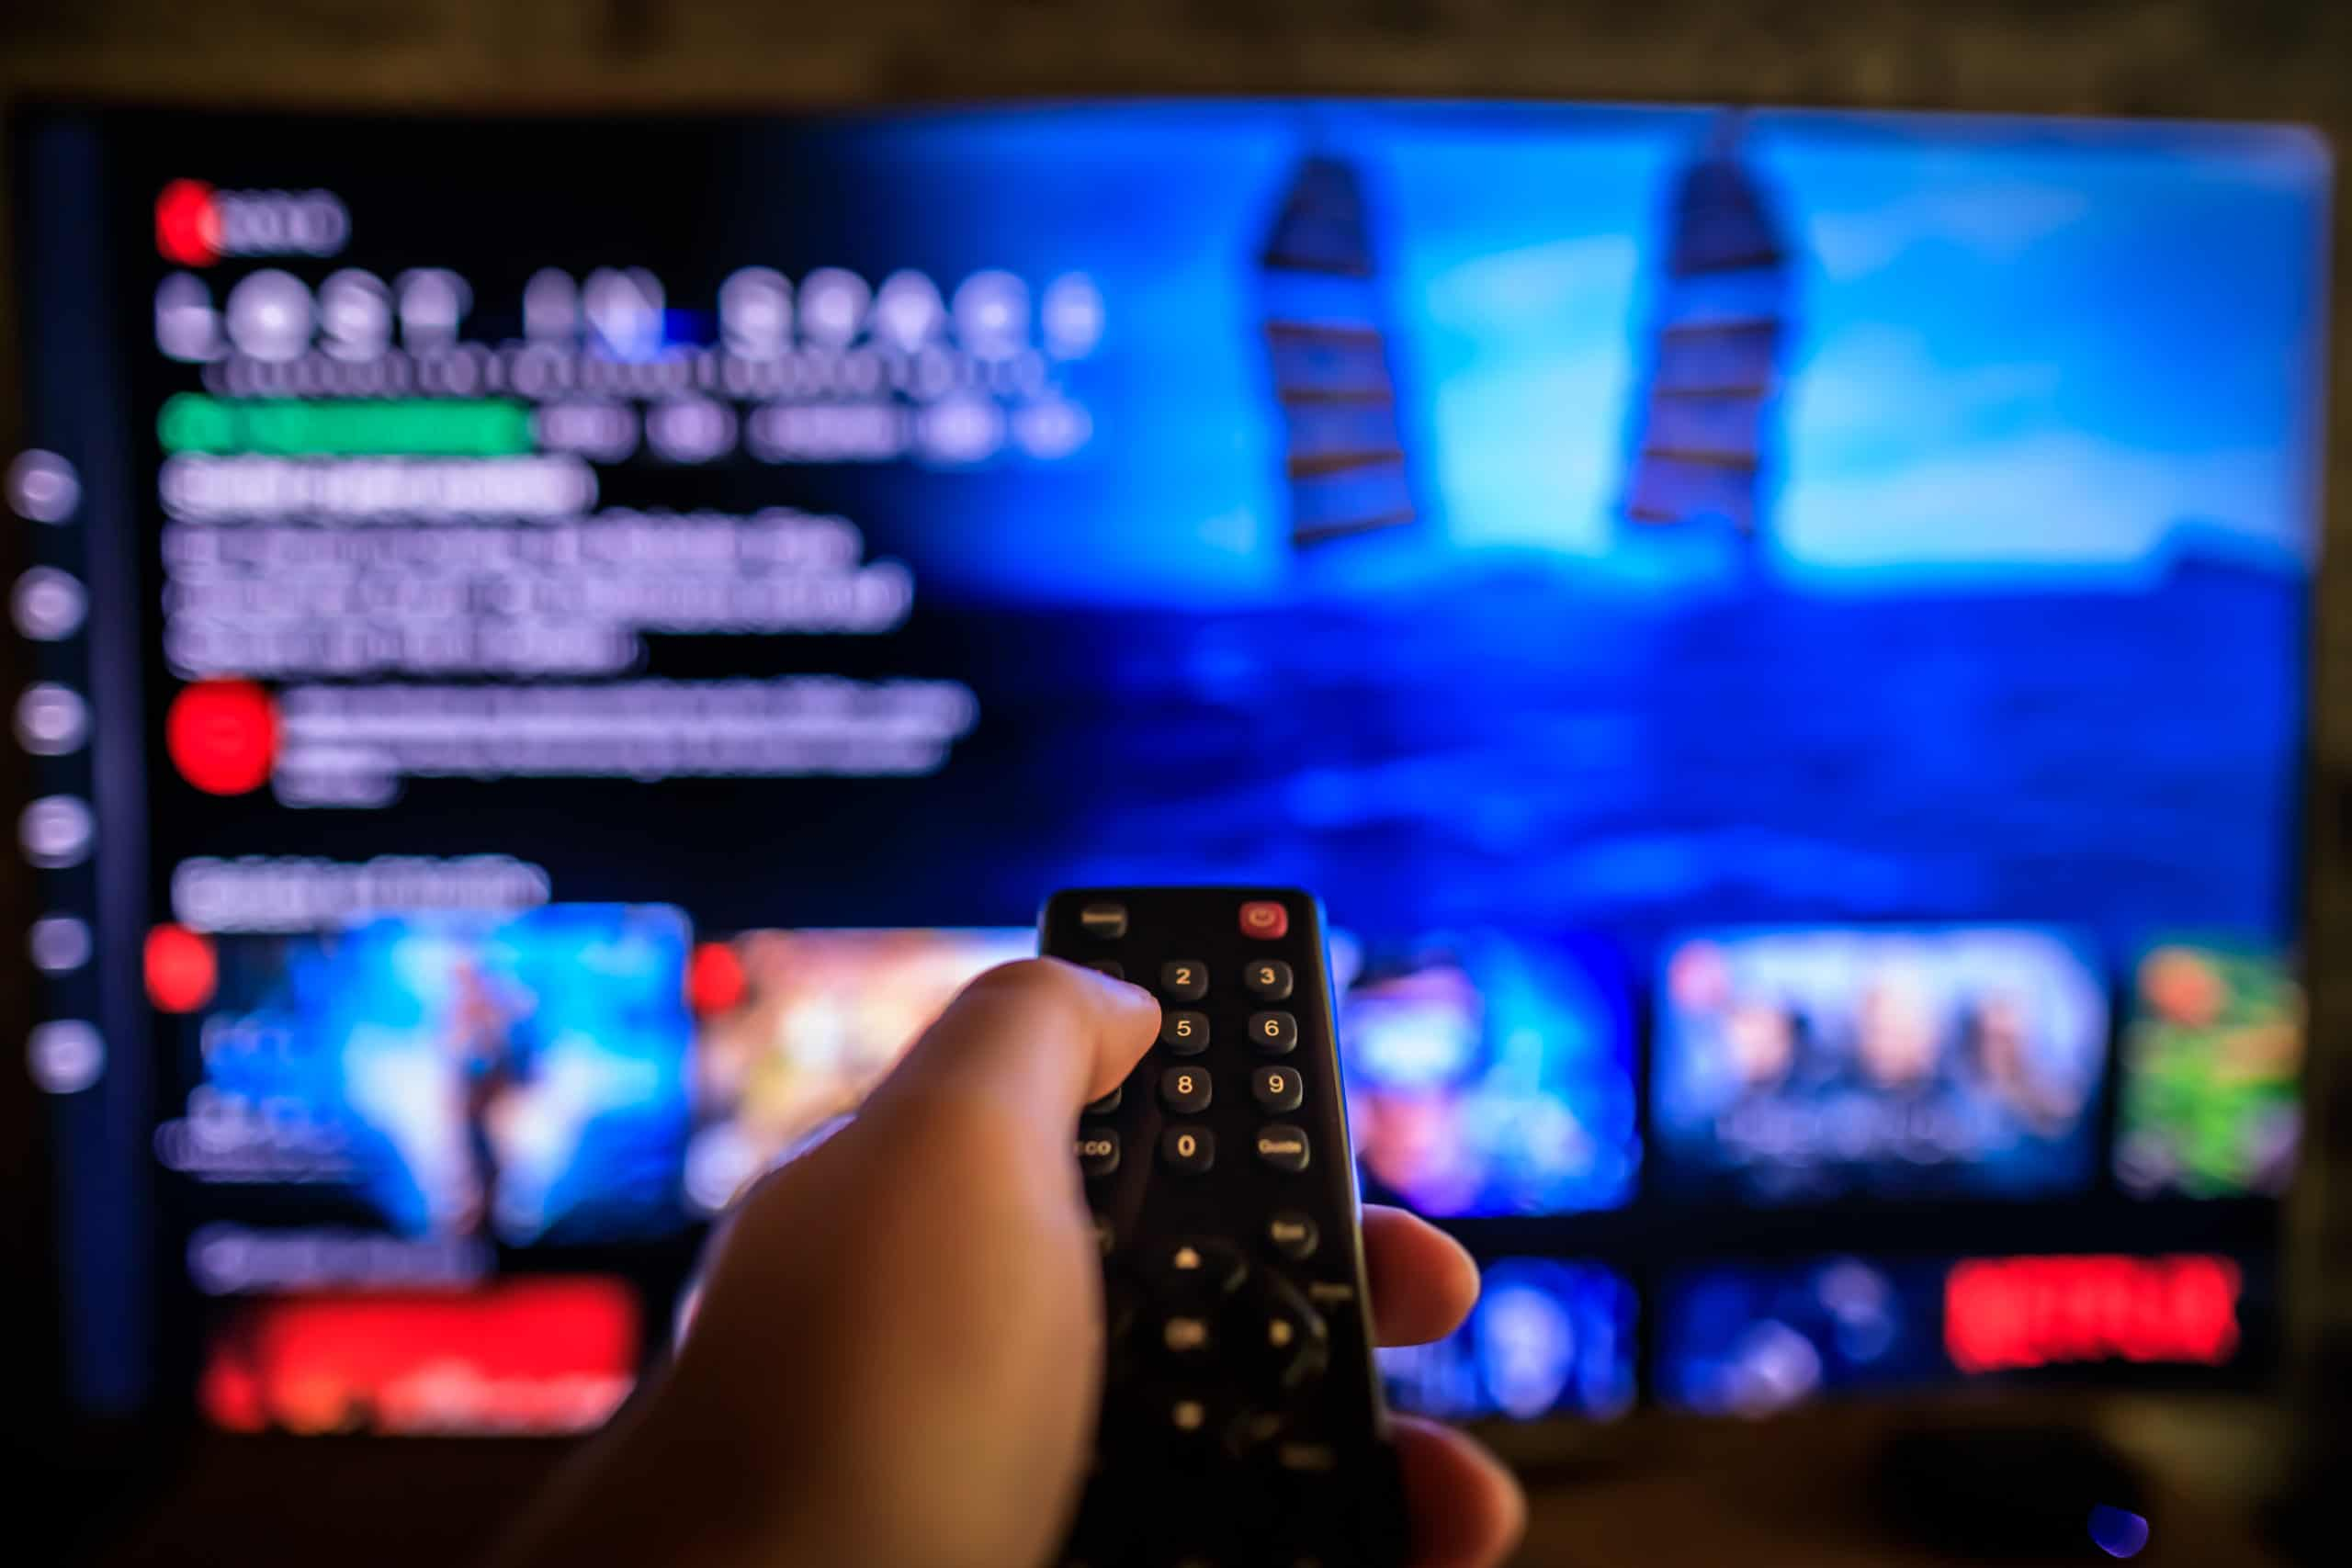 TV remote control in the foreground, Video on demand screen in the blurry background